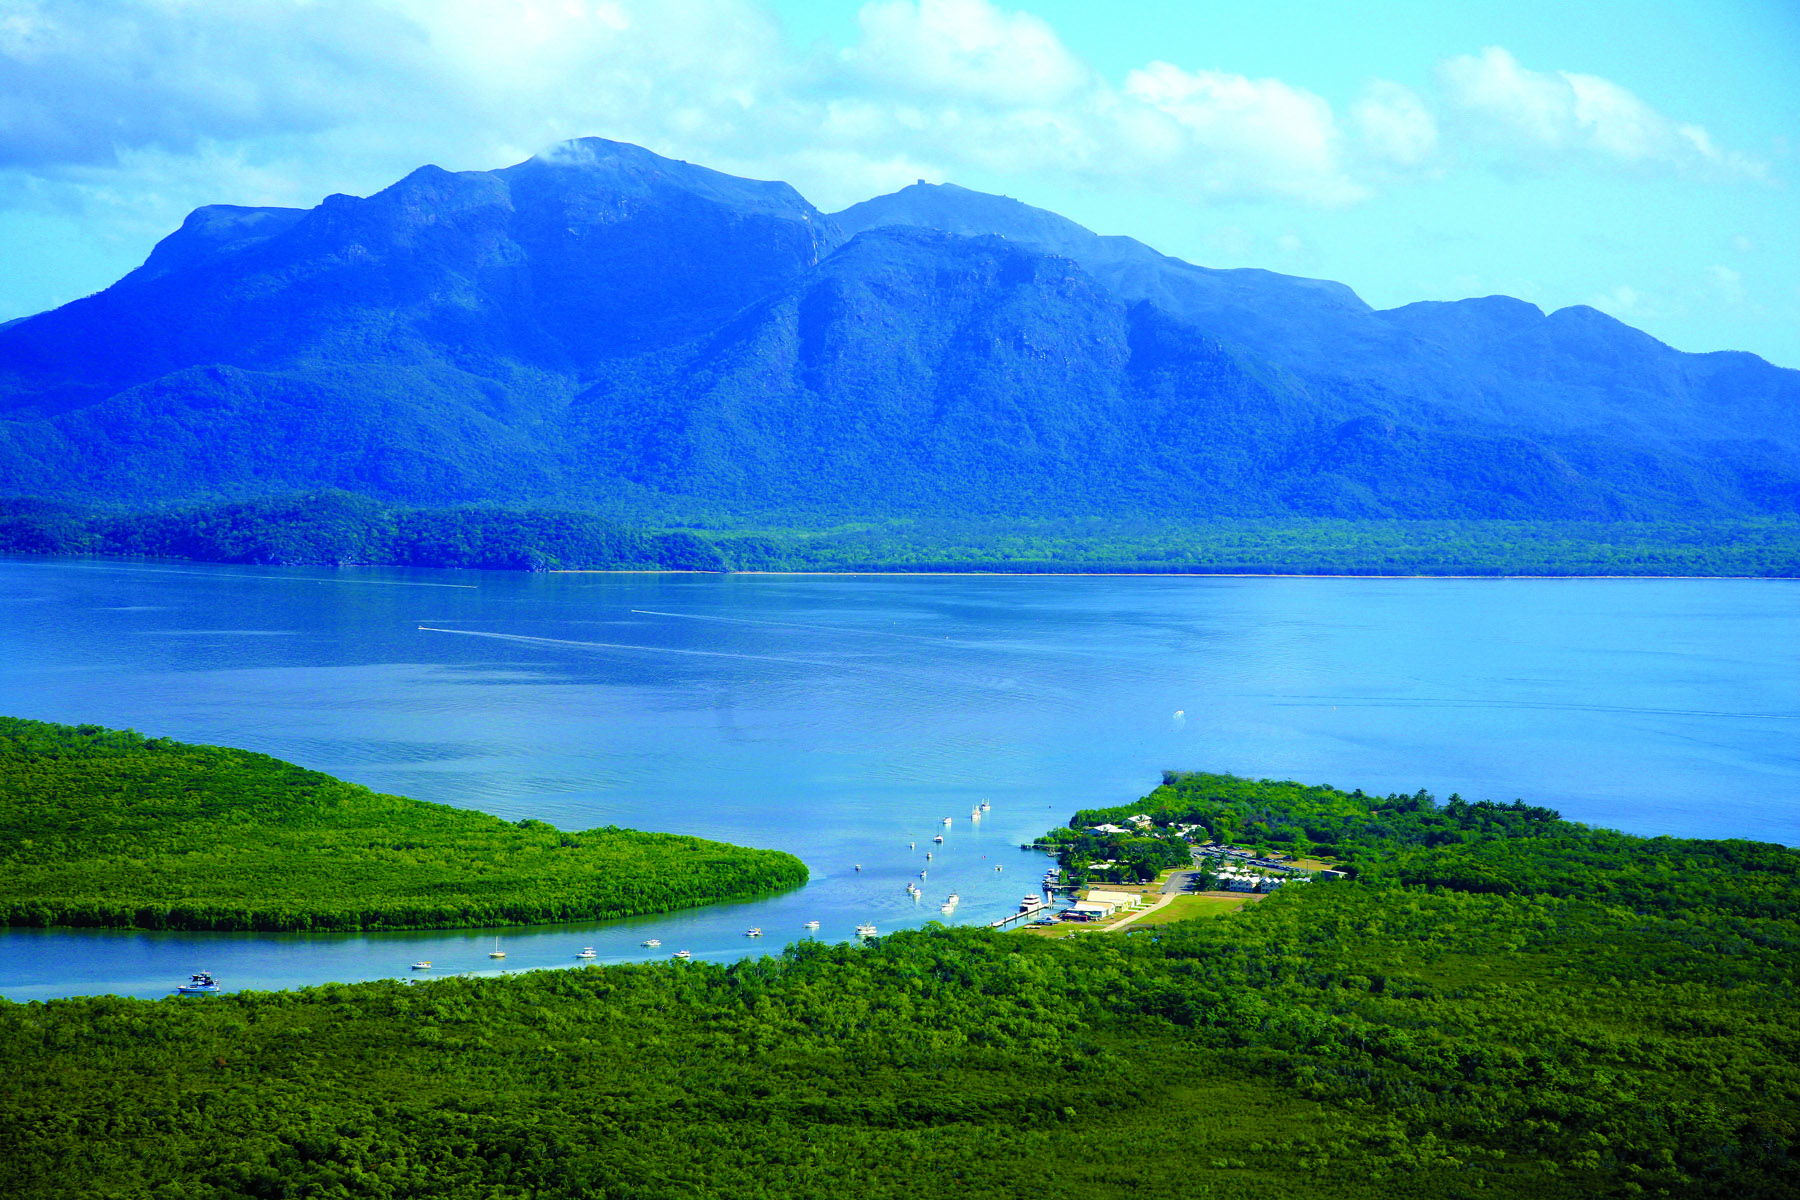 An aerial view of Dungeness, looking towards Hinchinbrook Channel. Hinchinbrook Island looms in the distance. PICTURE CREDIT: Katie Purling